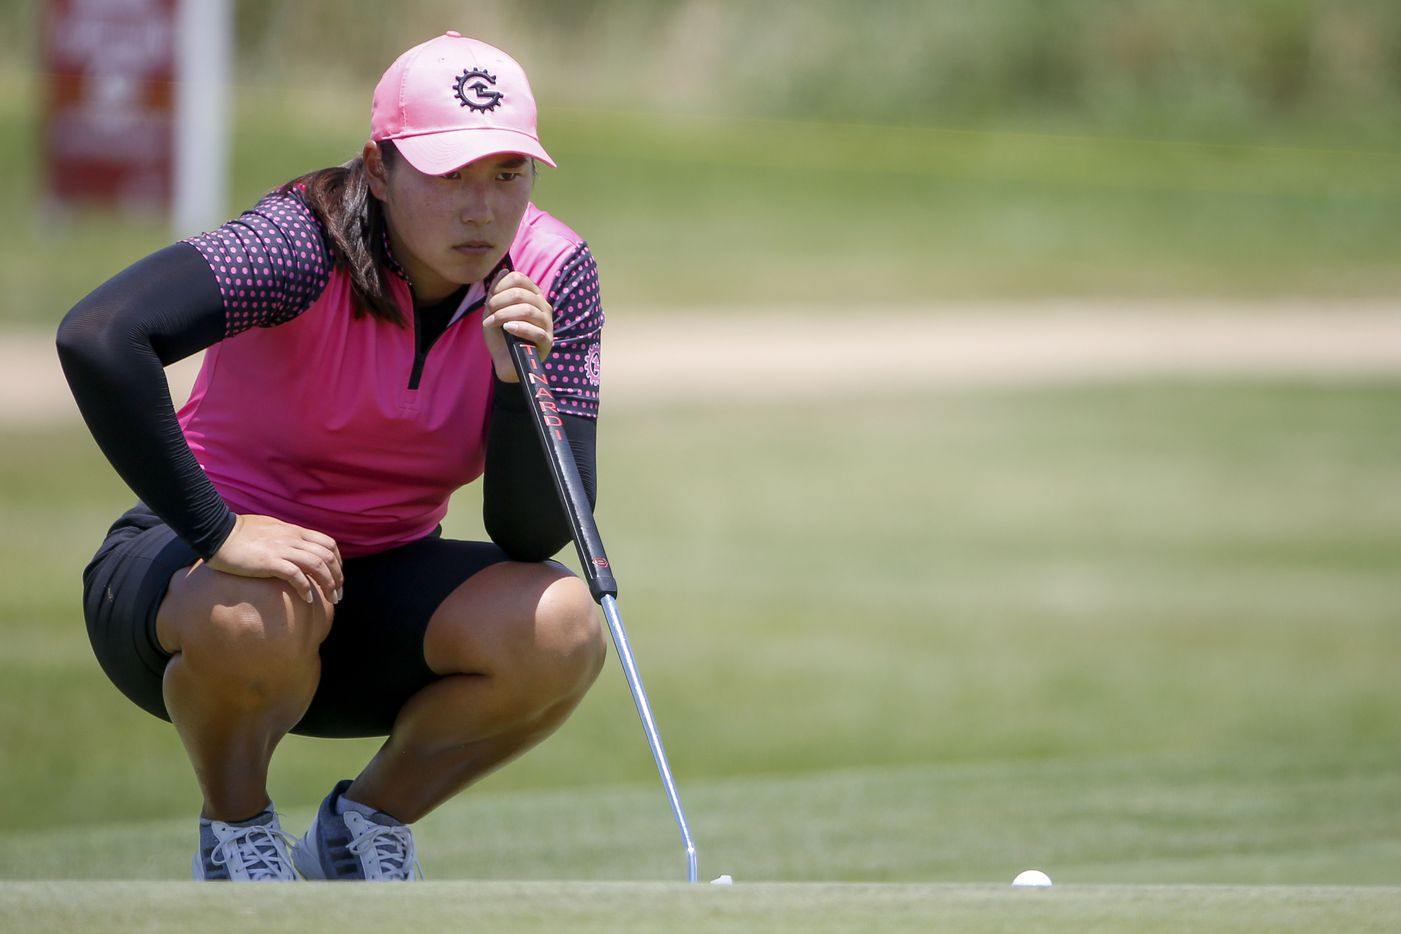 Professional golfer Min-G Kim lines up her putt on the 18th green during round one of the LPGA VOA Classic on Thursday, July 1, 2021, in The Colony, Texas. Kim finished the first day at six under par. (Elias Valverde II/The Dallas Morning News)